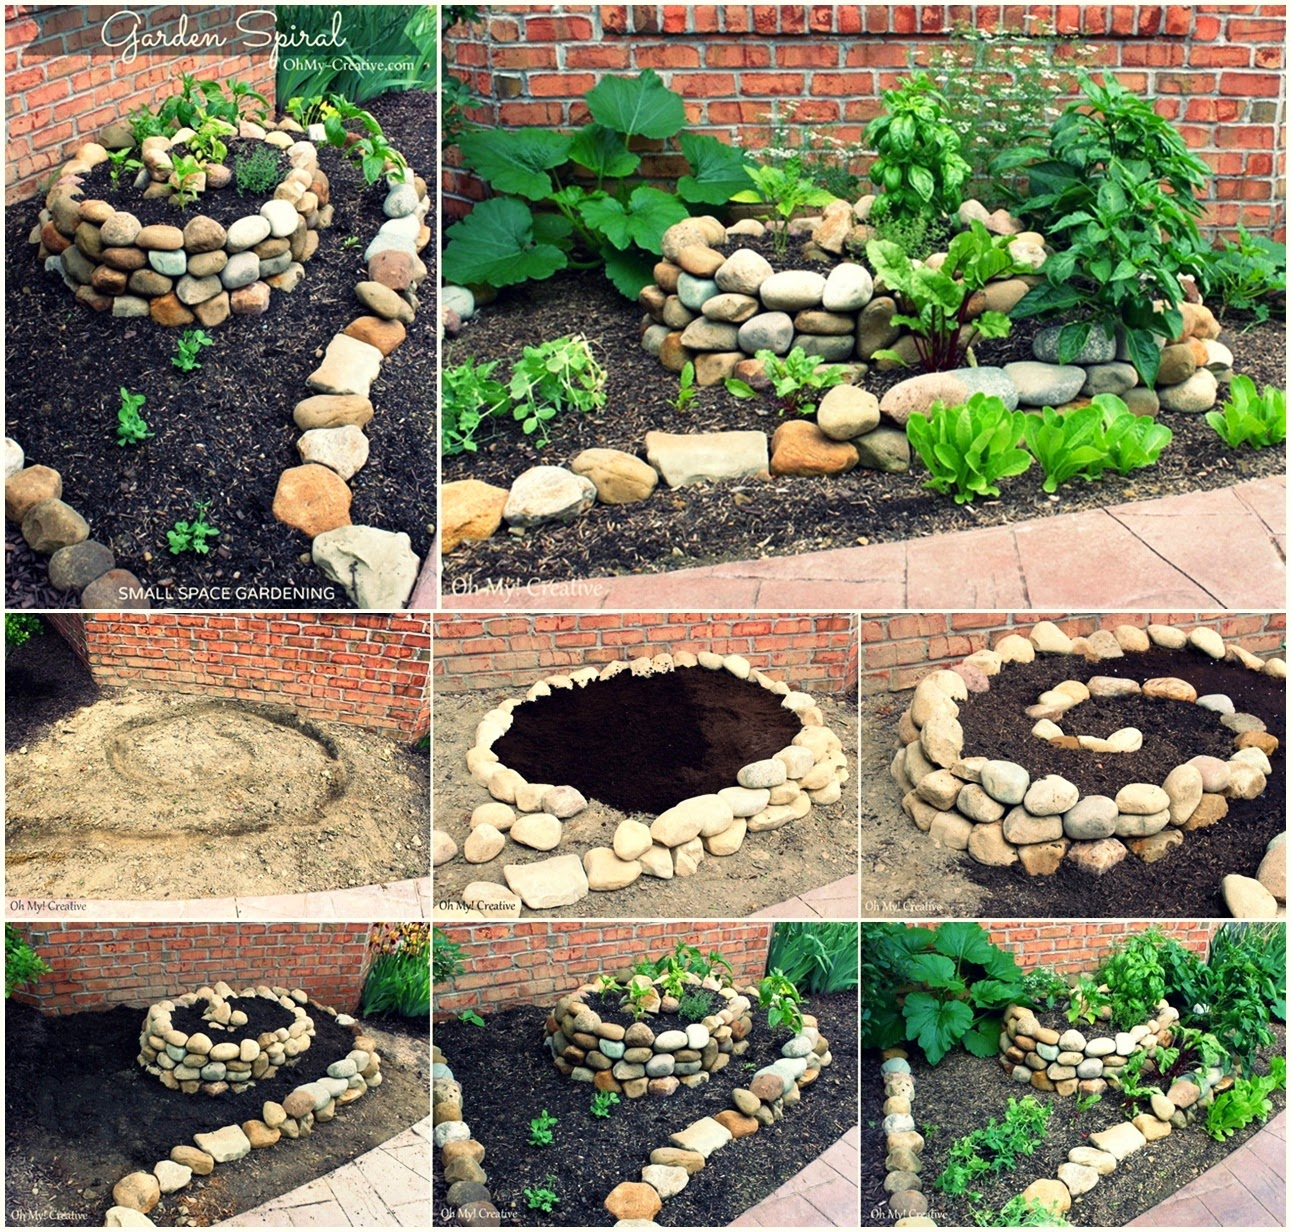 Diy create a small vegetable garden using a garden spiral for Creating a small garden